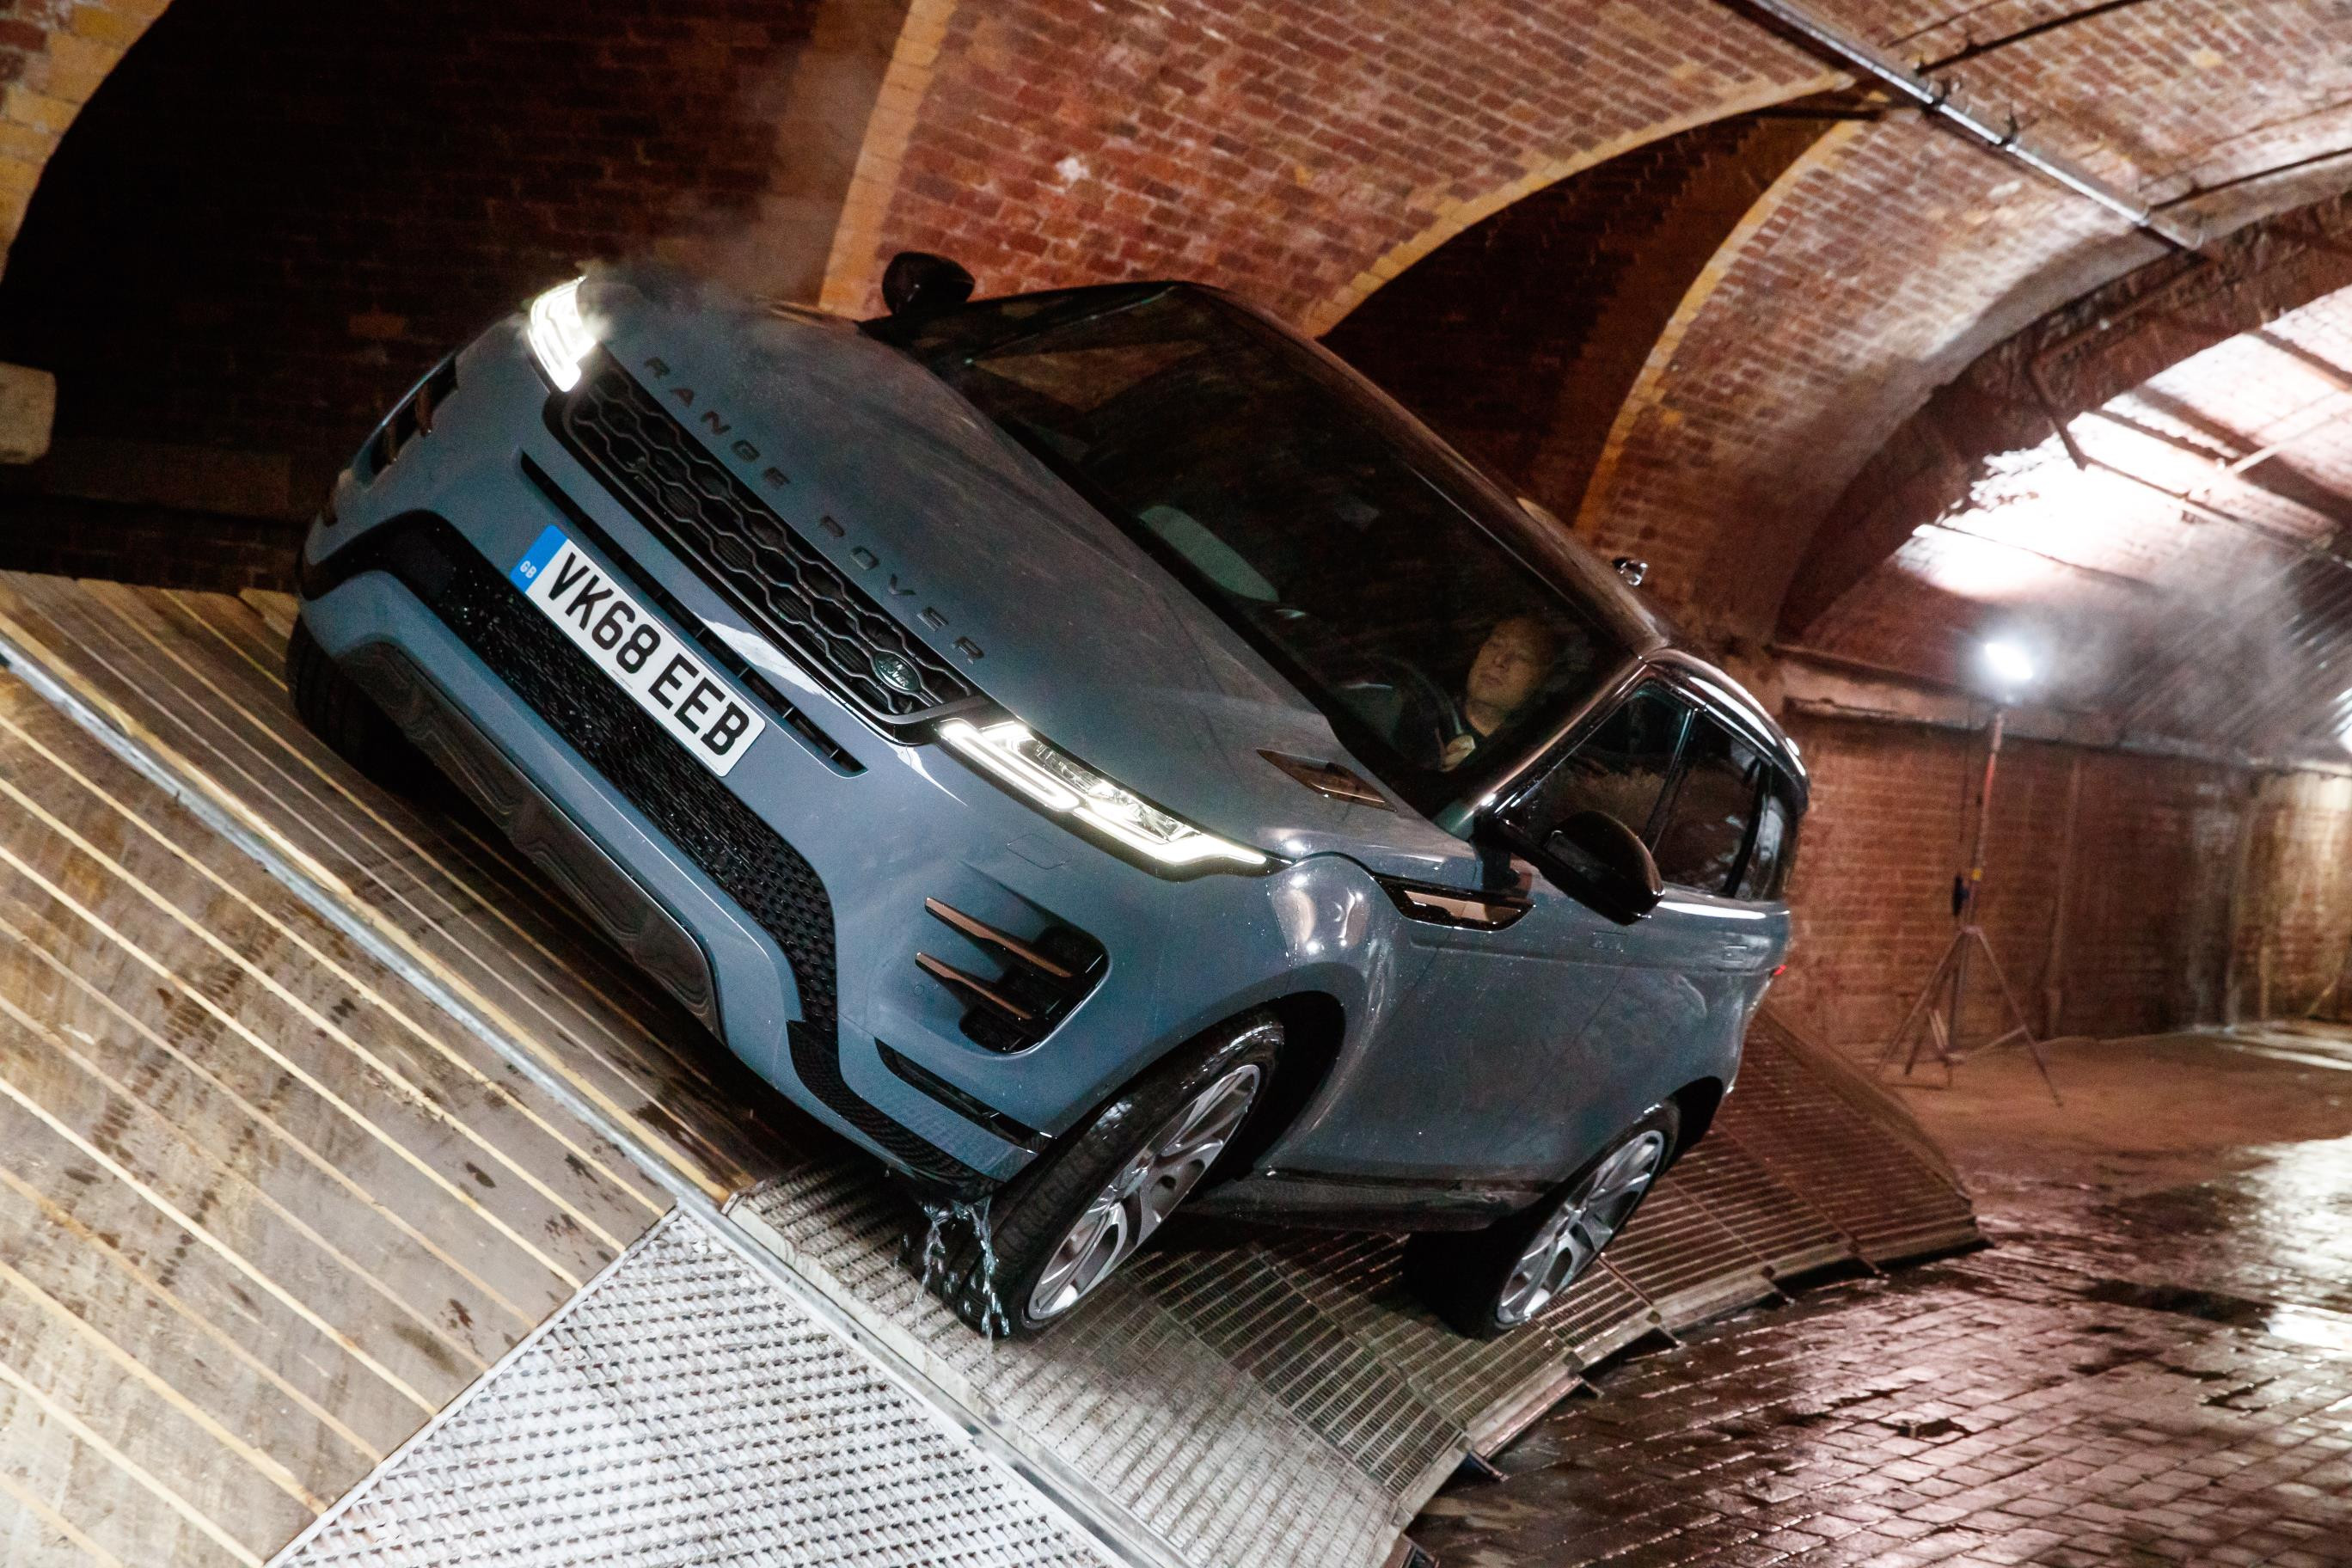 White Range Rover Evoque driving through a tunnel filled with water